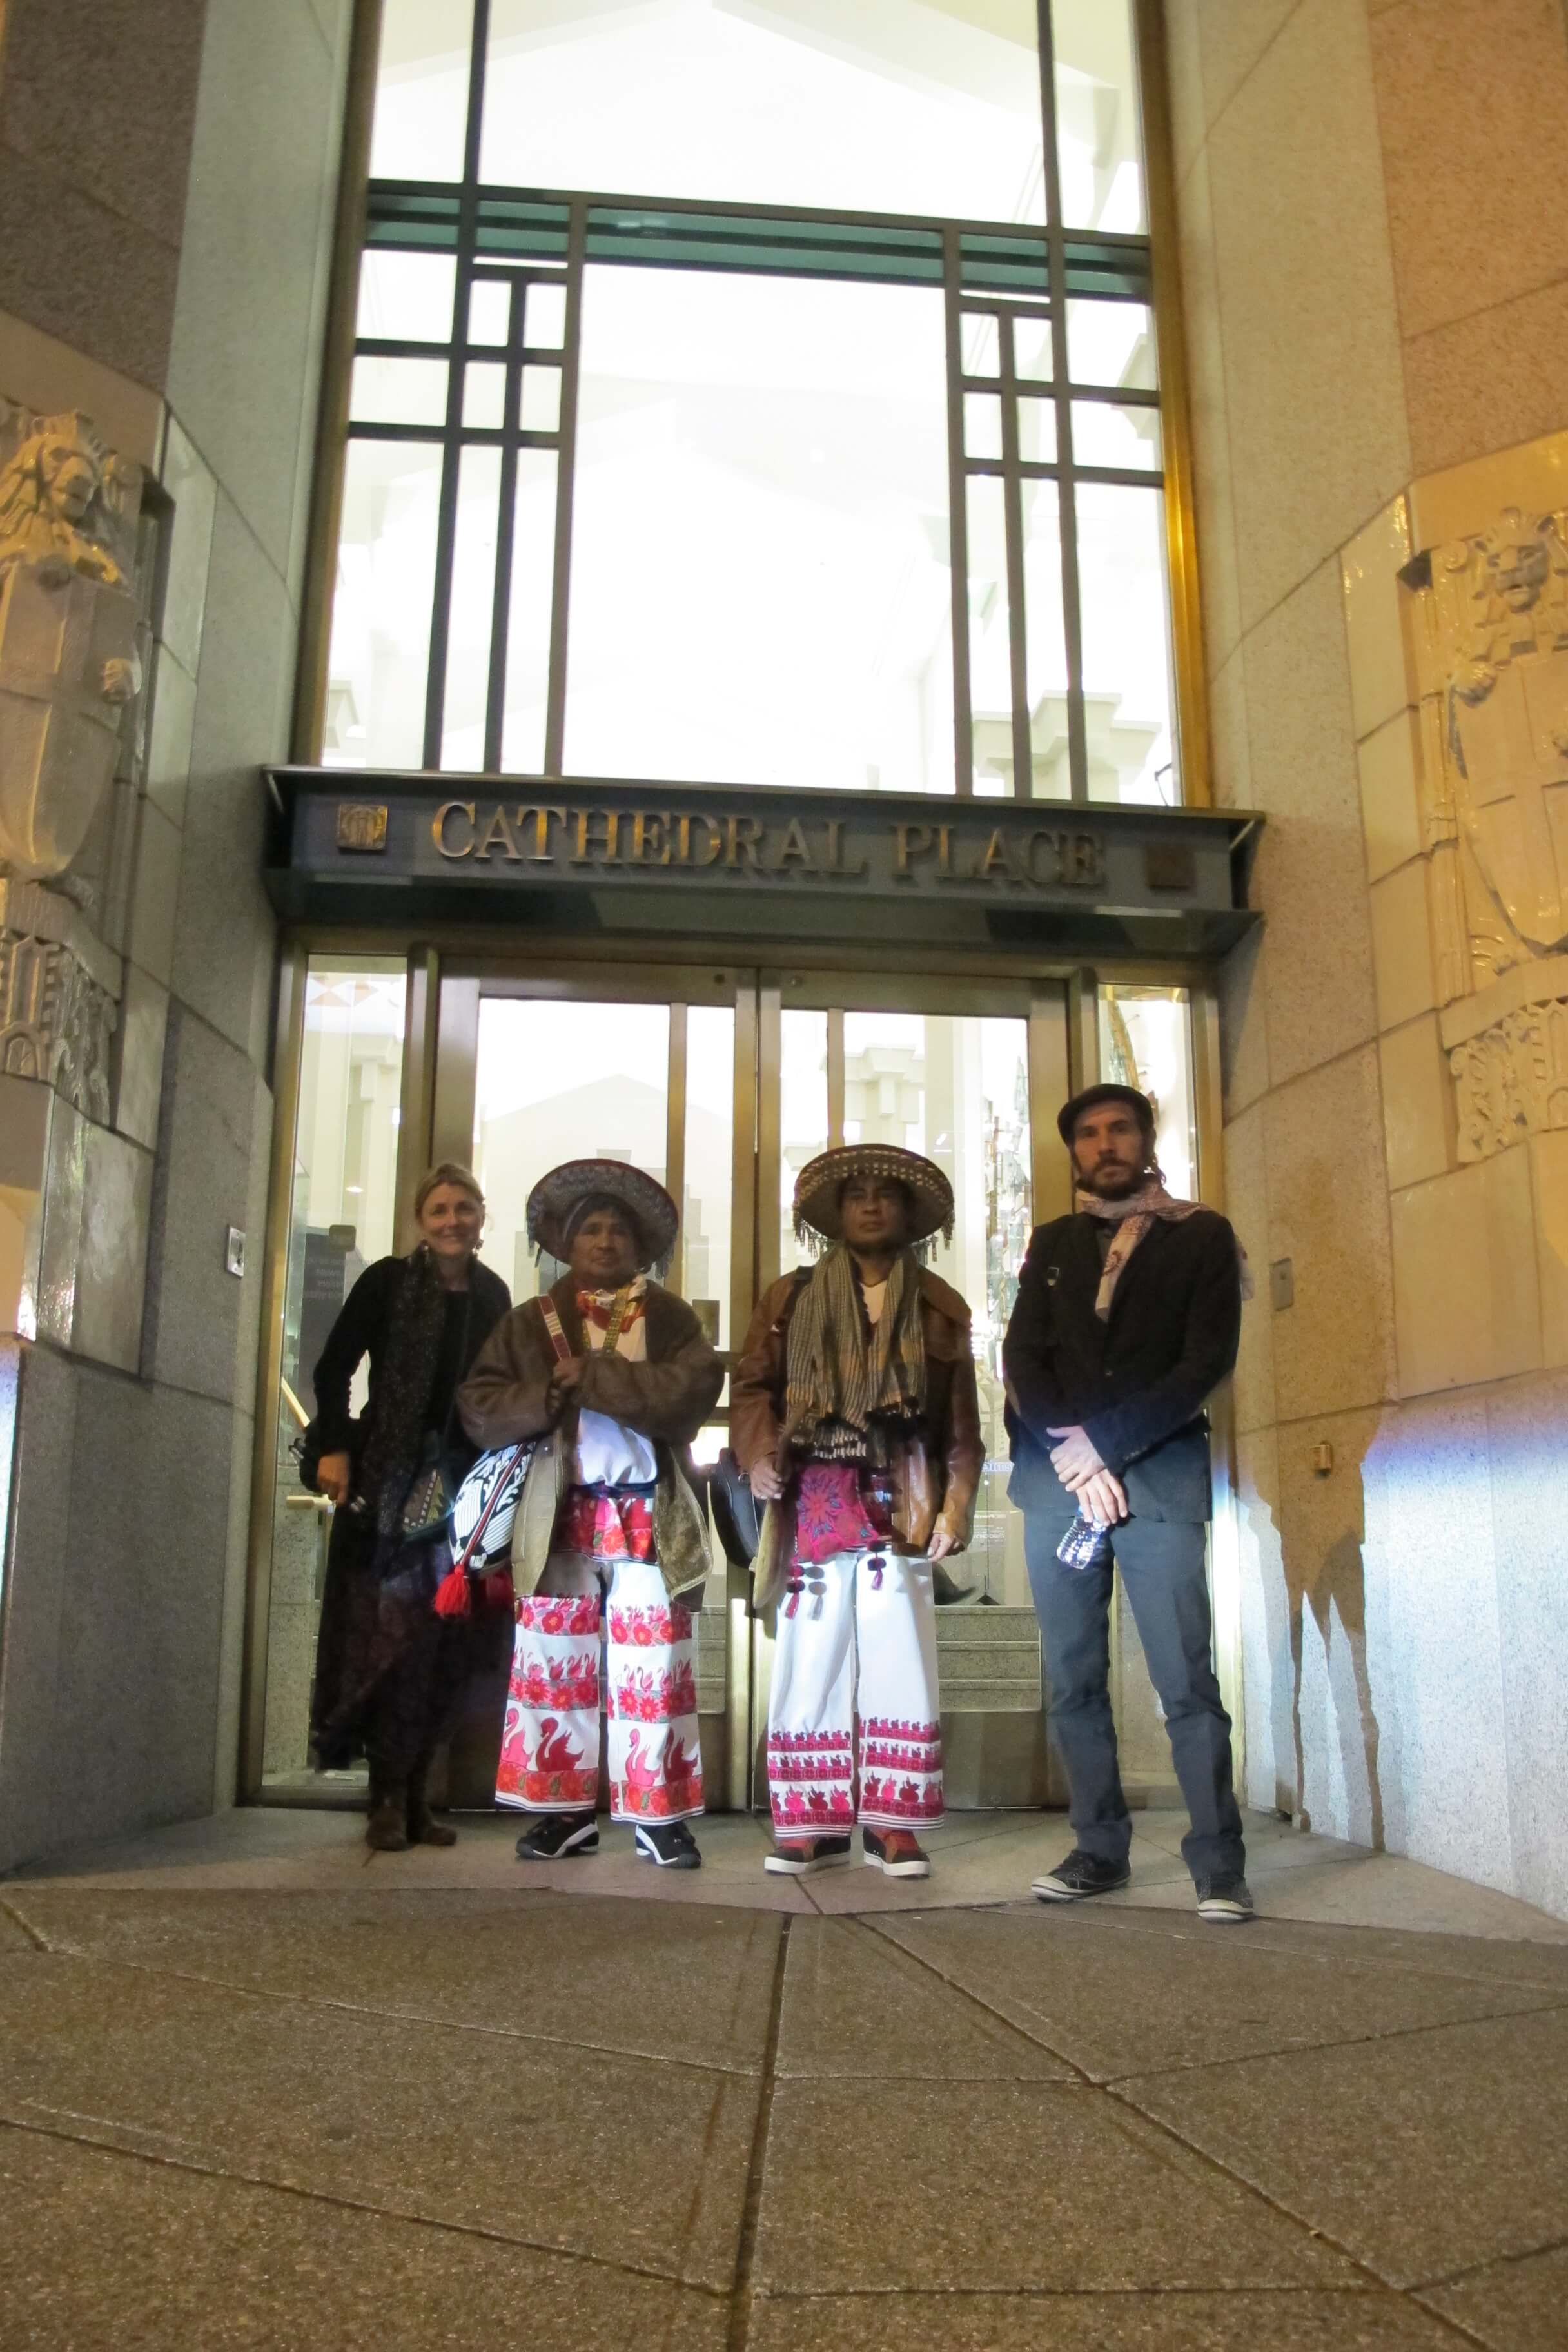 Huicholes North American Film Tour  makes a stop at First Majestic Silver Corp. headquarters to deliver a letter from the Wixarika authorities and a copy of the DVD.